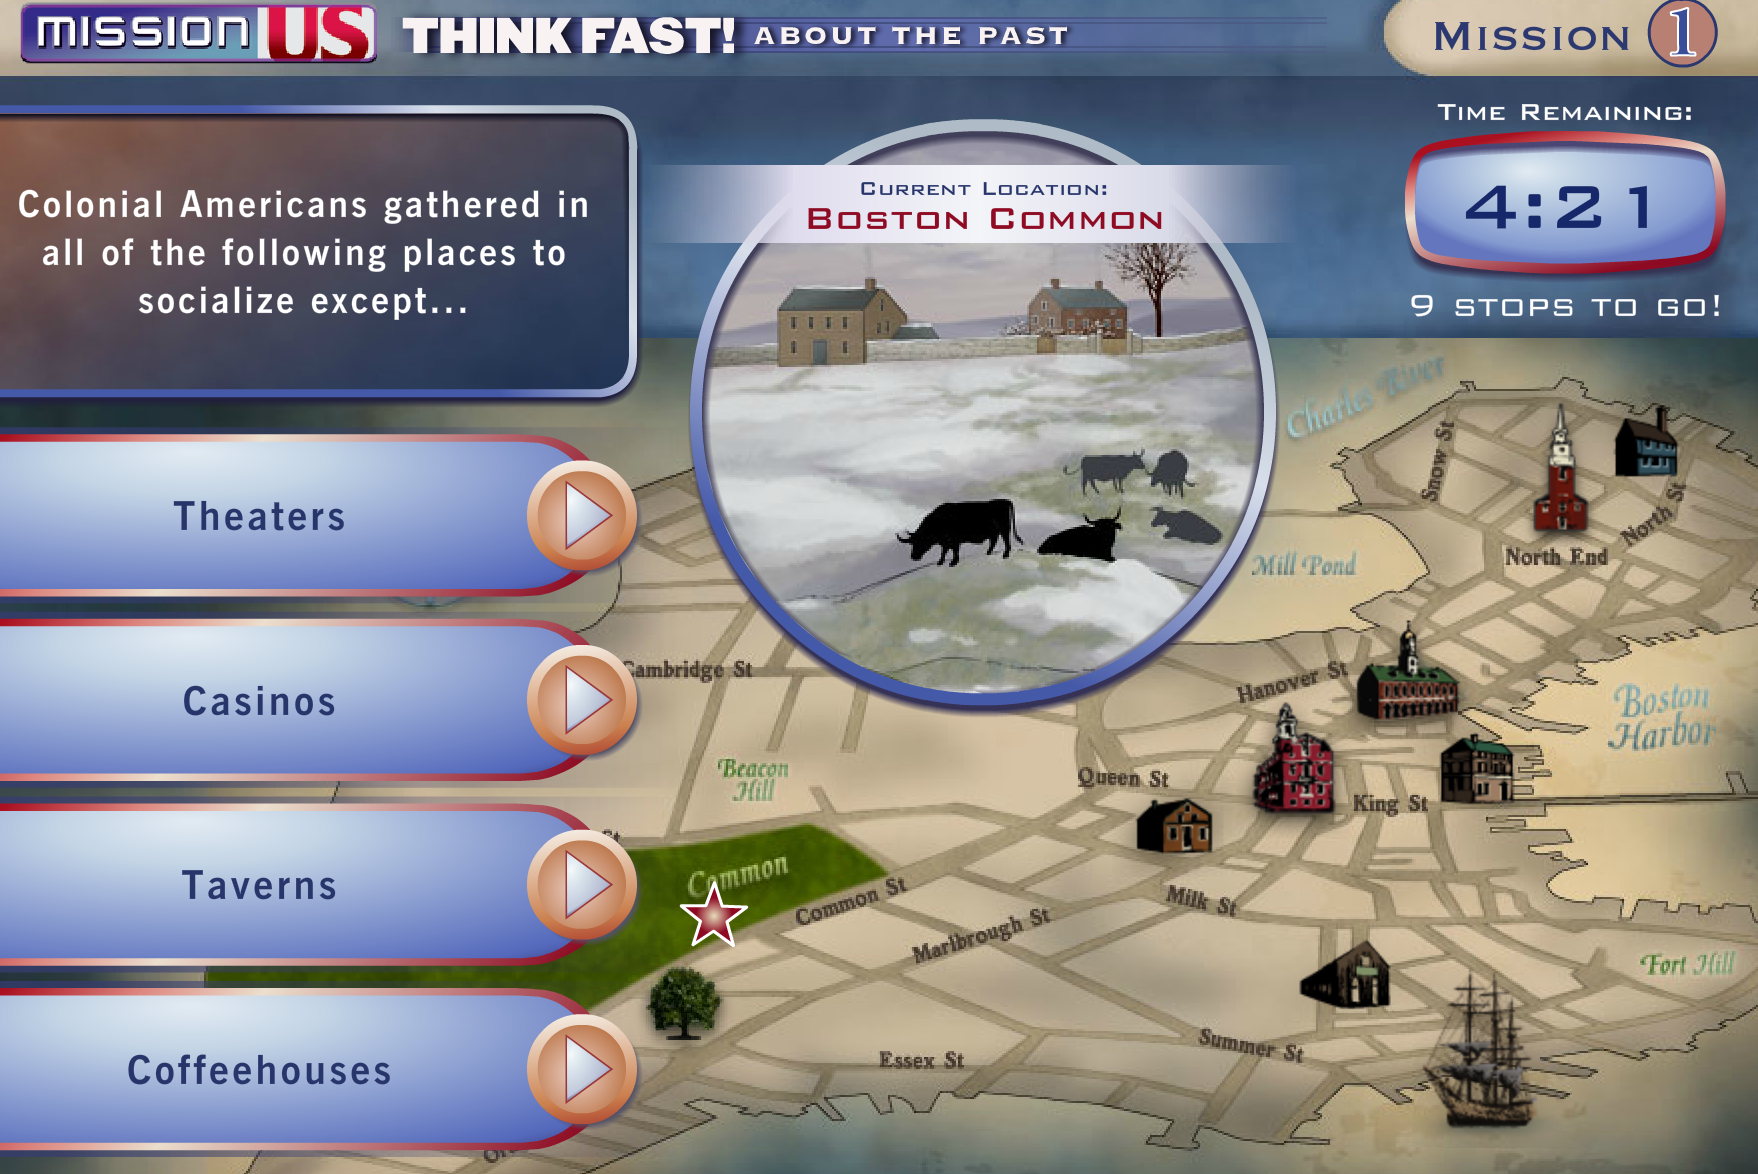 Screen grab from Think Fast About the Past for Mission 1 of Mission US